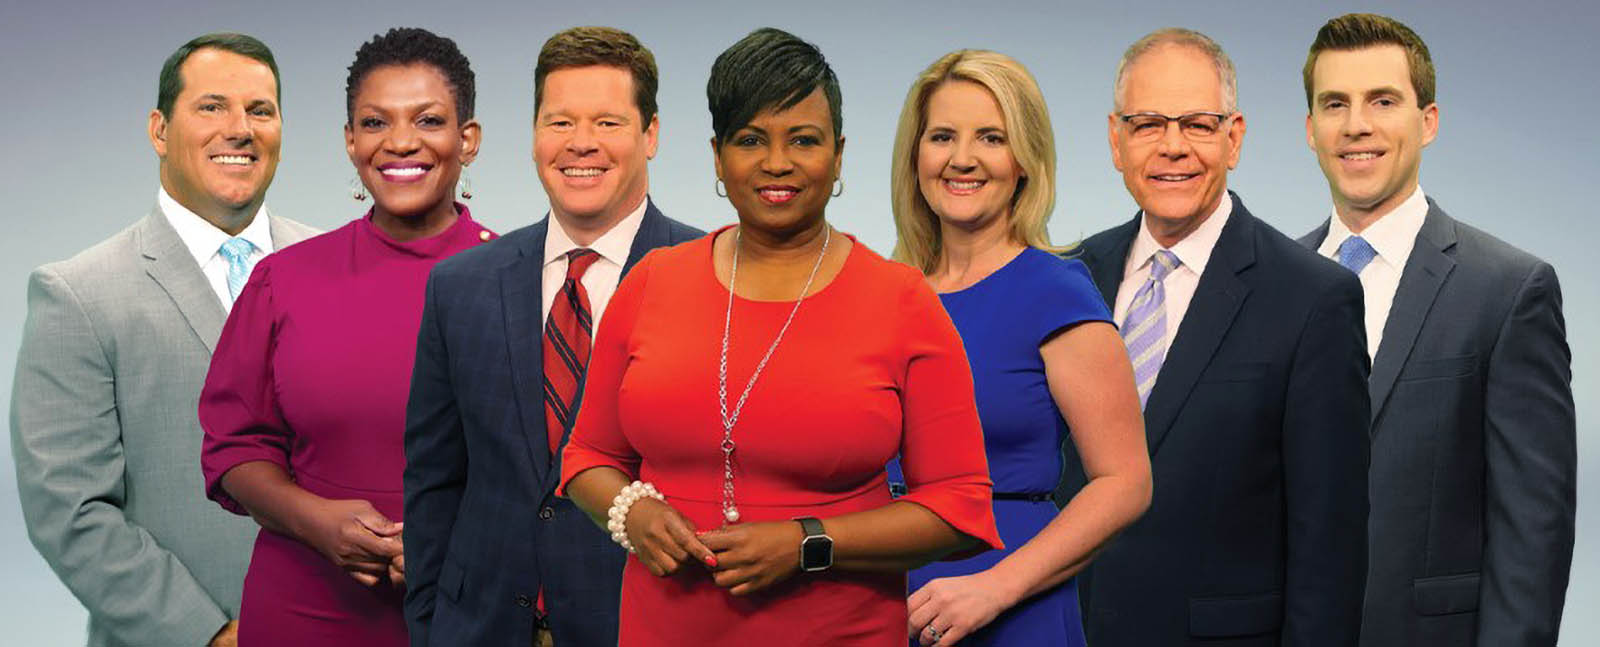 WSFA News anchor persons